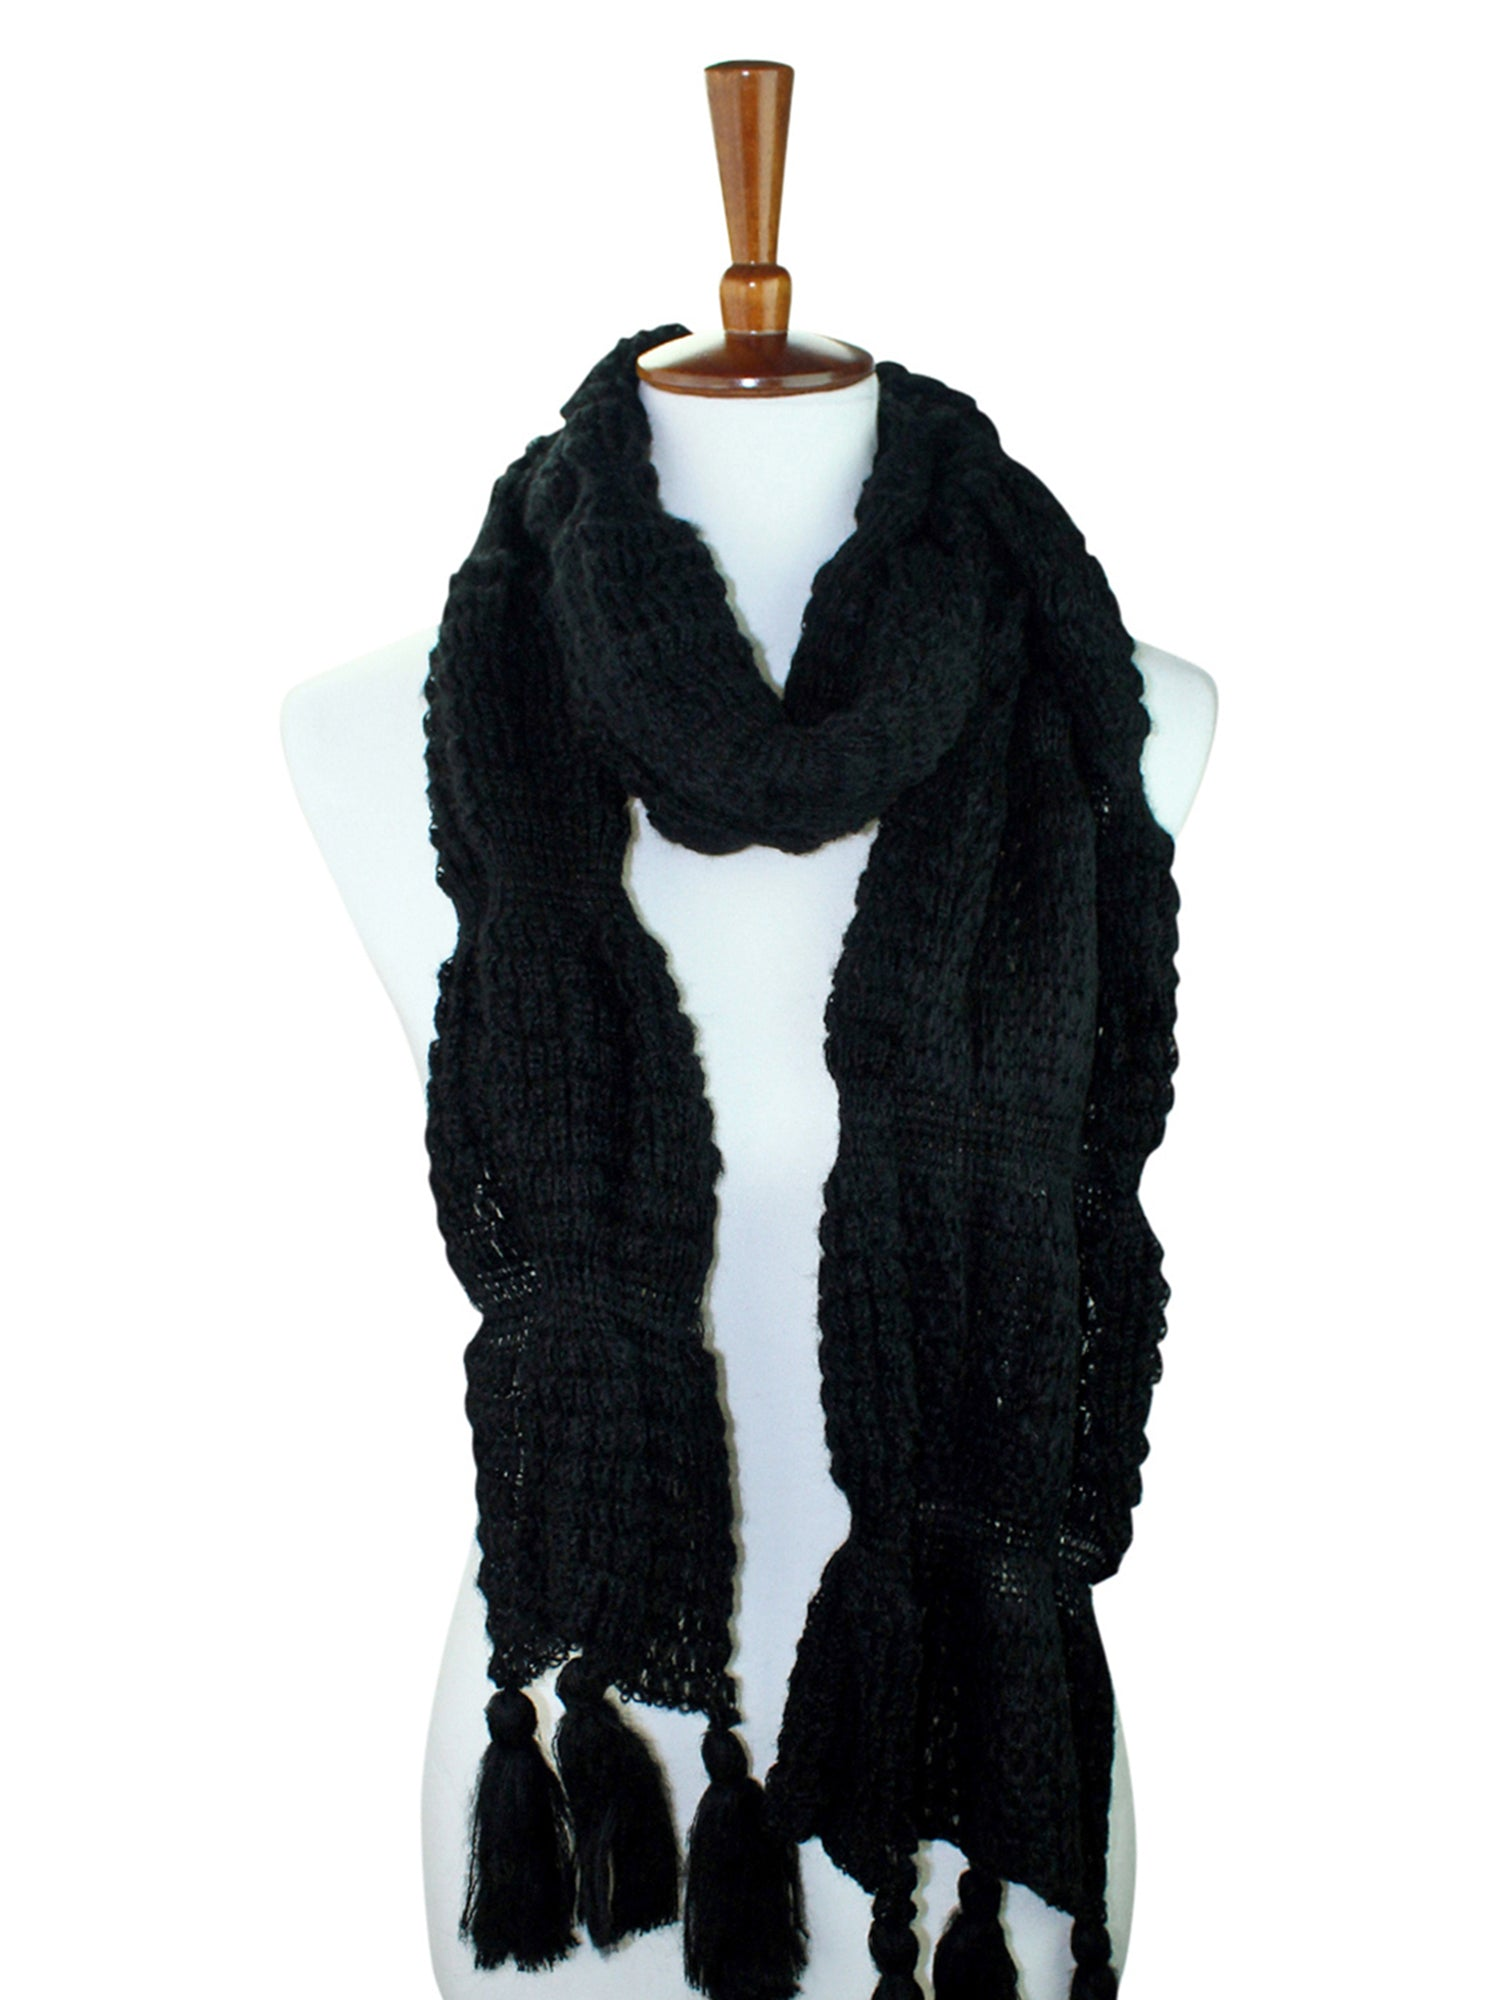 Winter Knit Scarf With Tassels